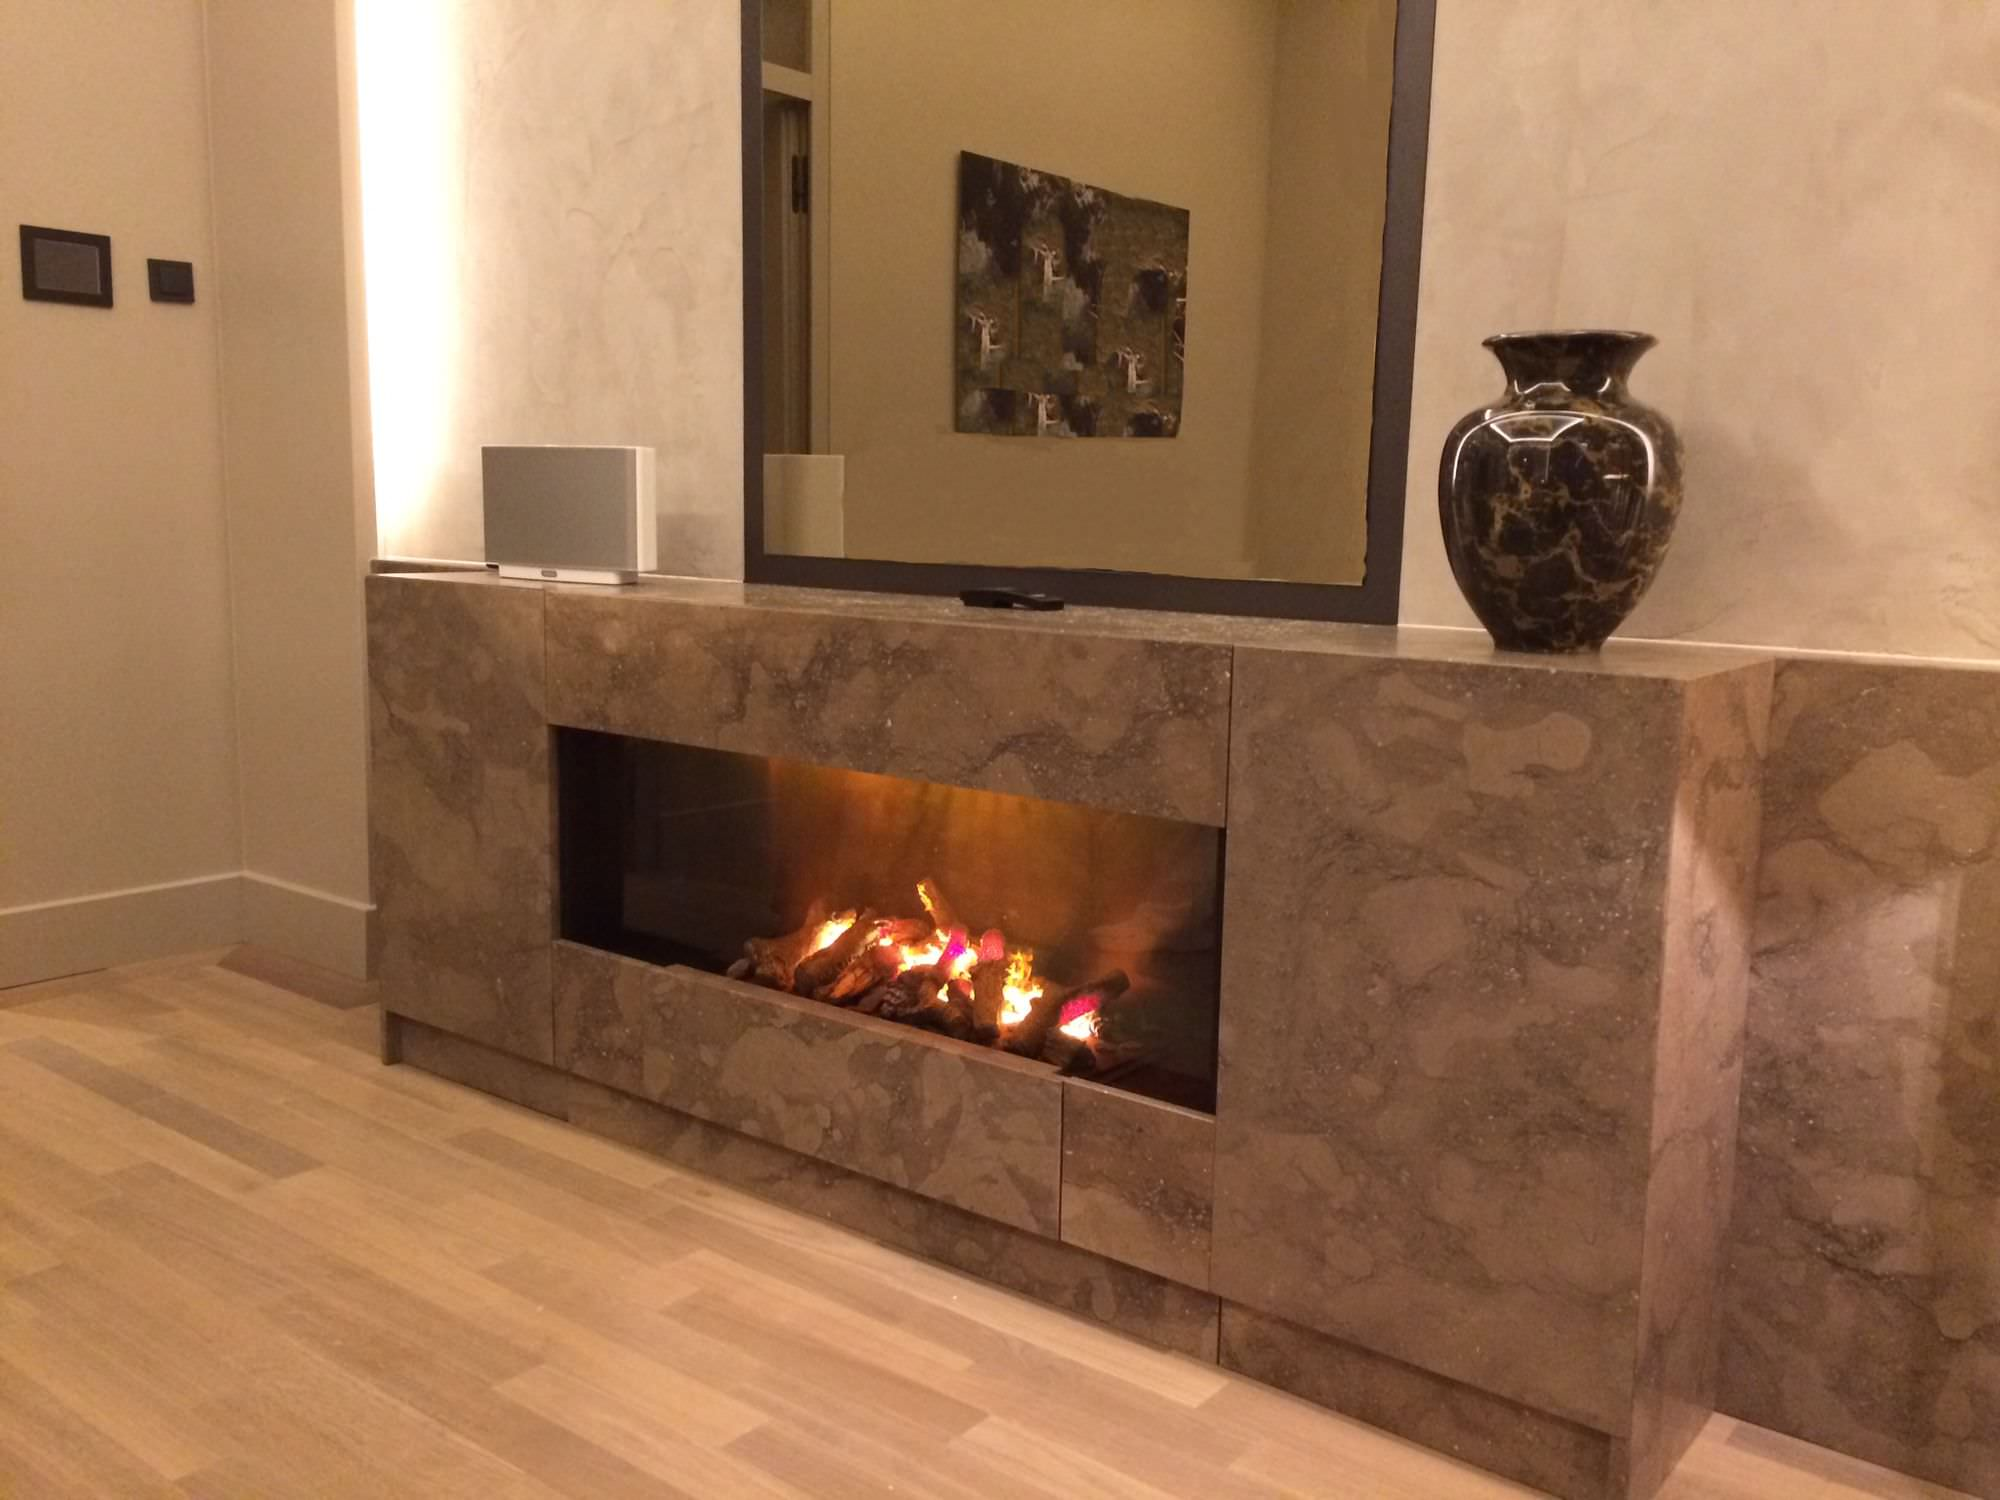 logs definiftion in definition sb high shop fireplace sandstone direct plug com napoleon fireplaces shopfireplace vent